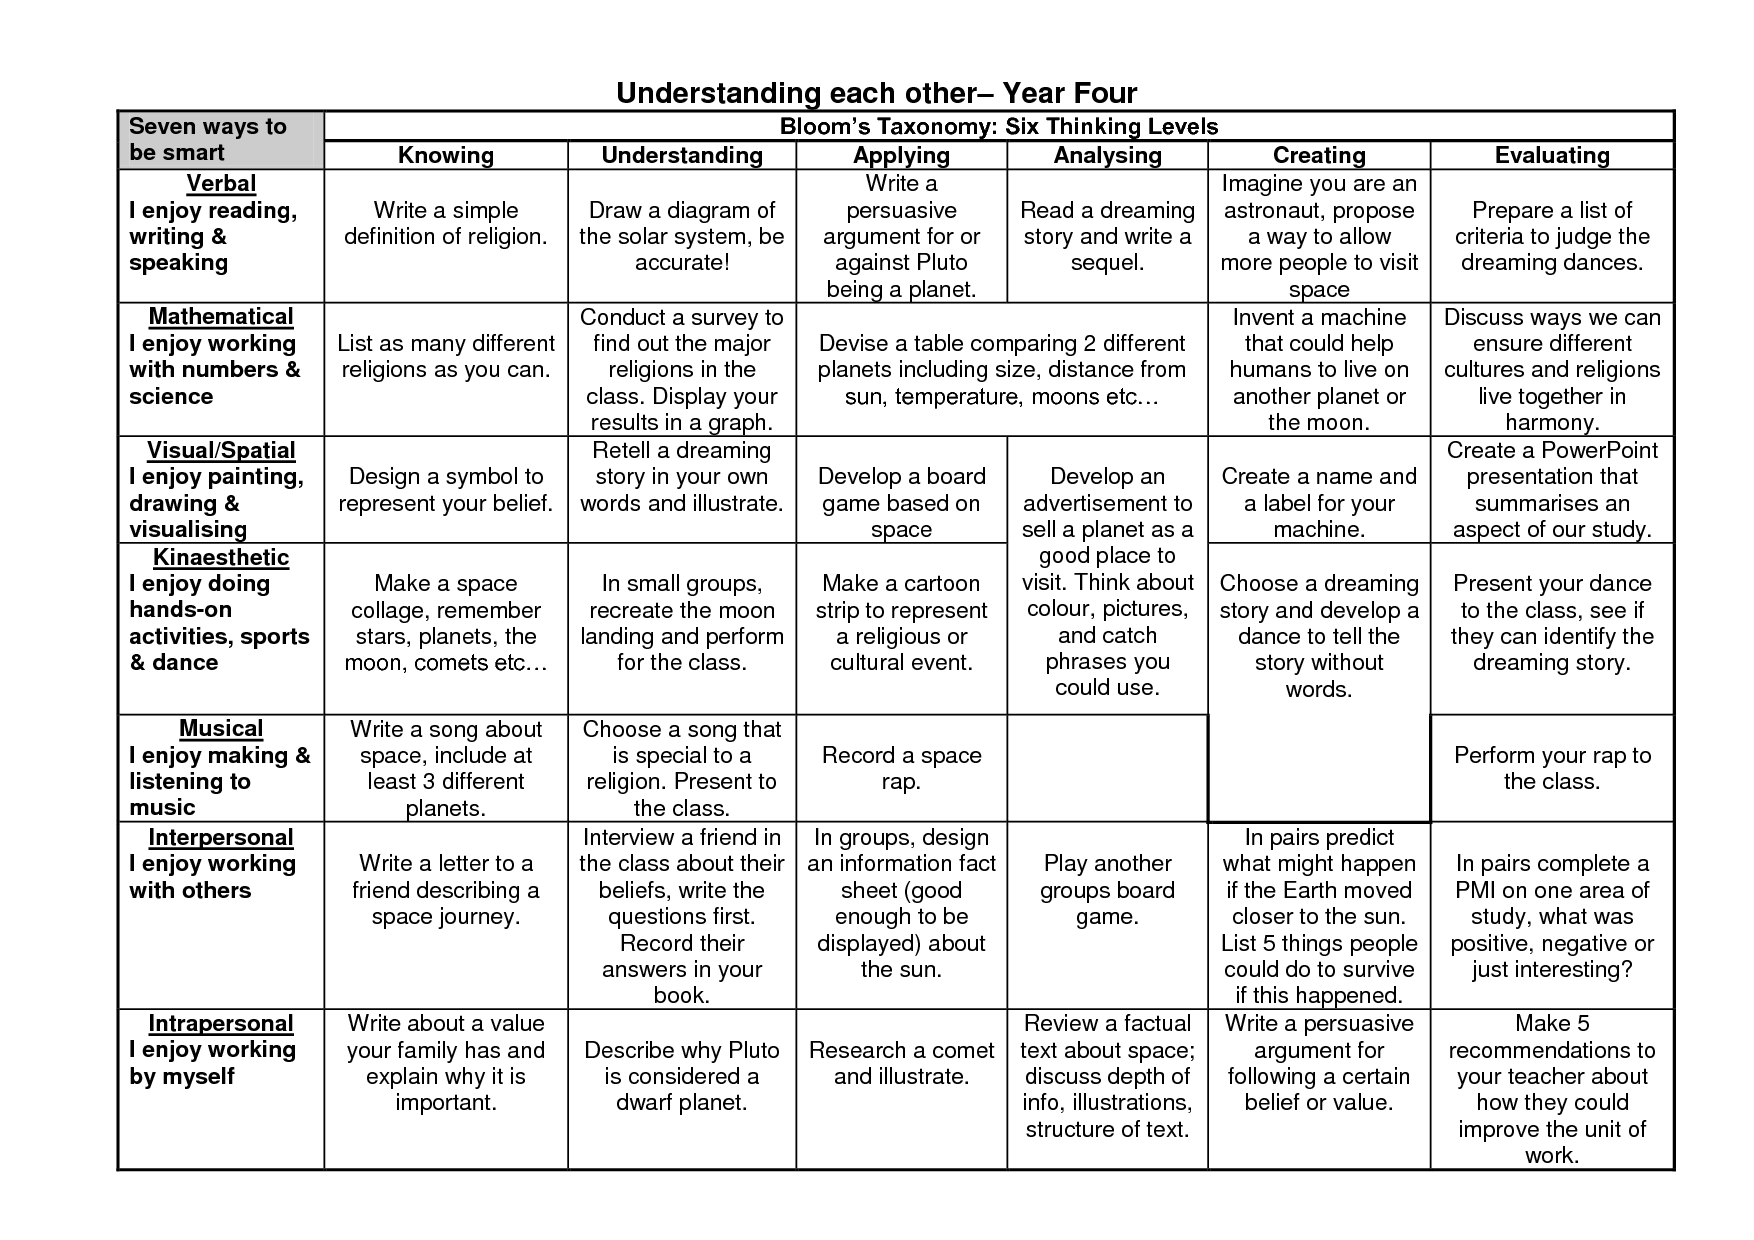 bloom taxonomy lesson plan template.html